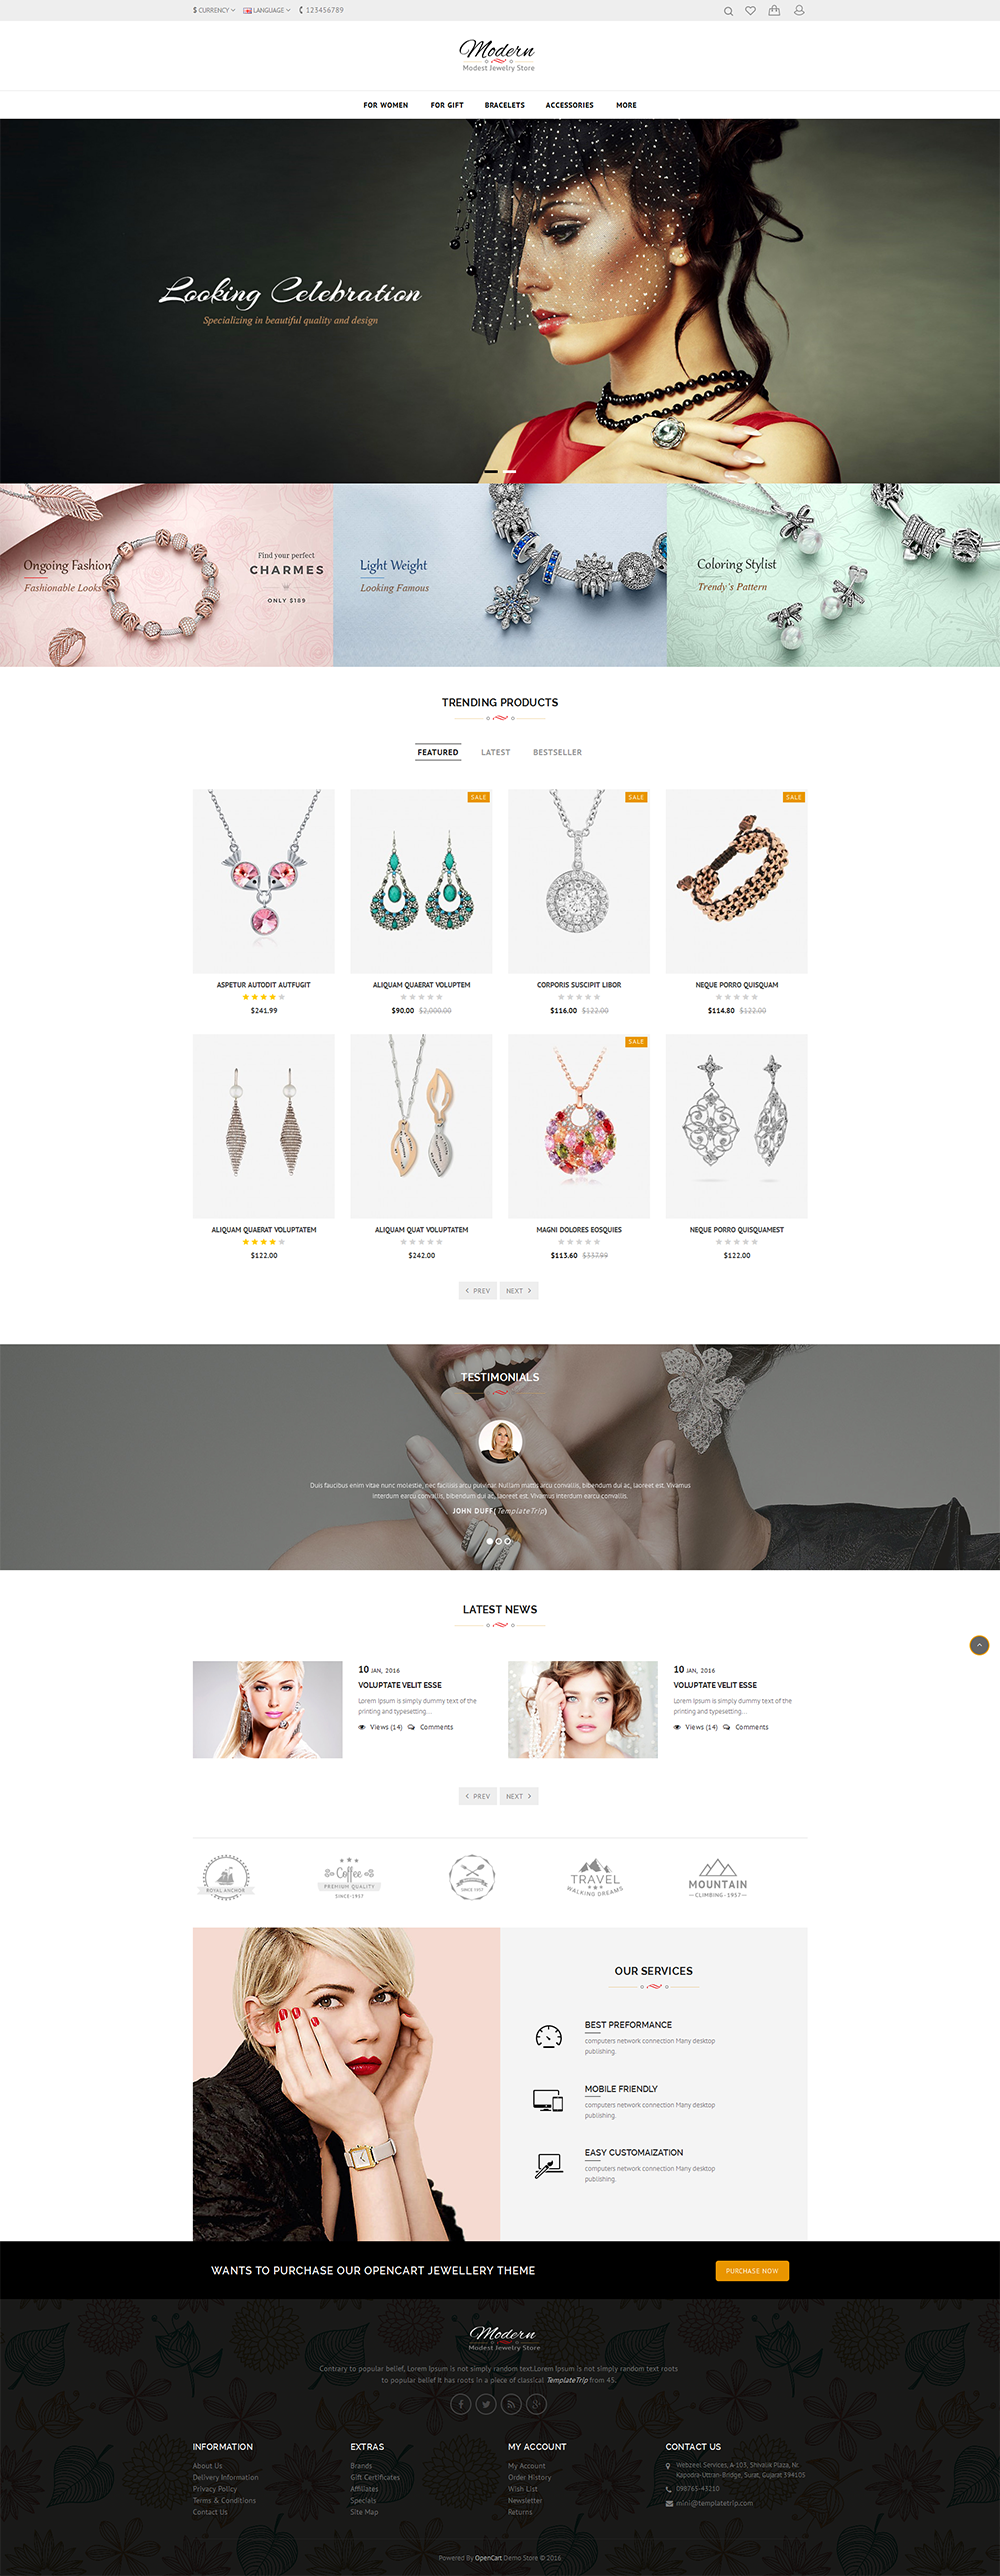 I will design your word press, shopify ,wix website and e-commerce store